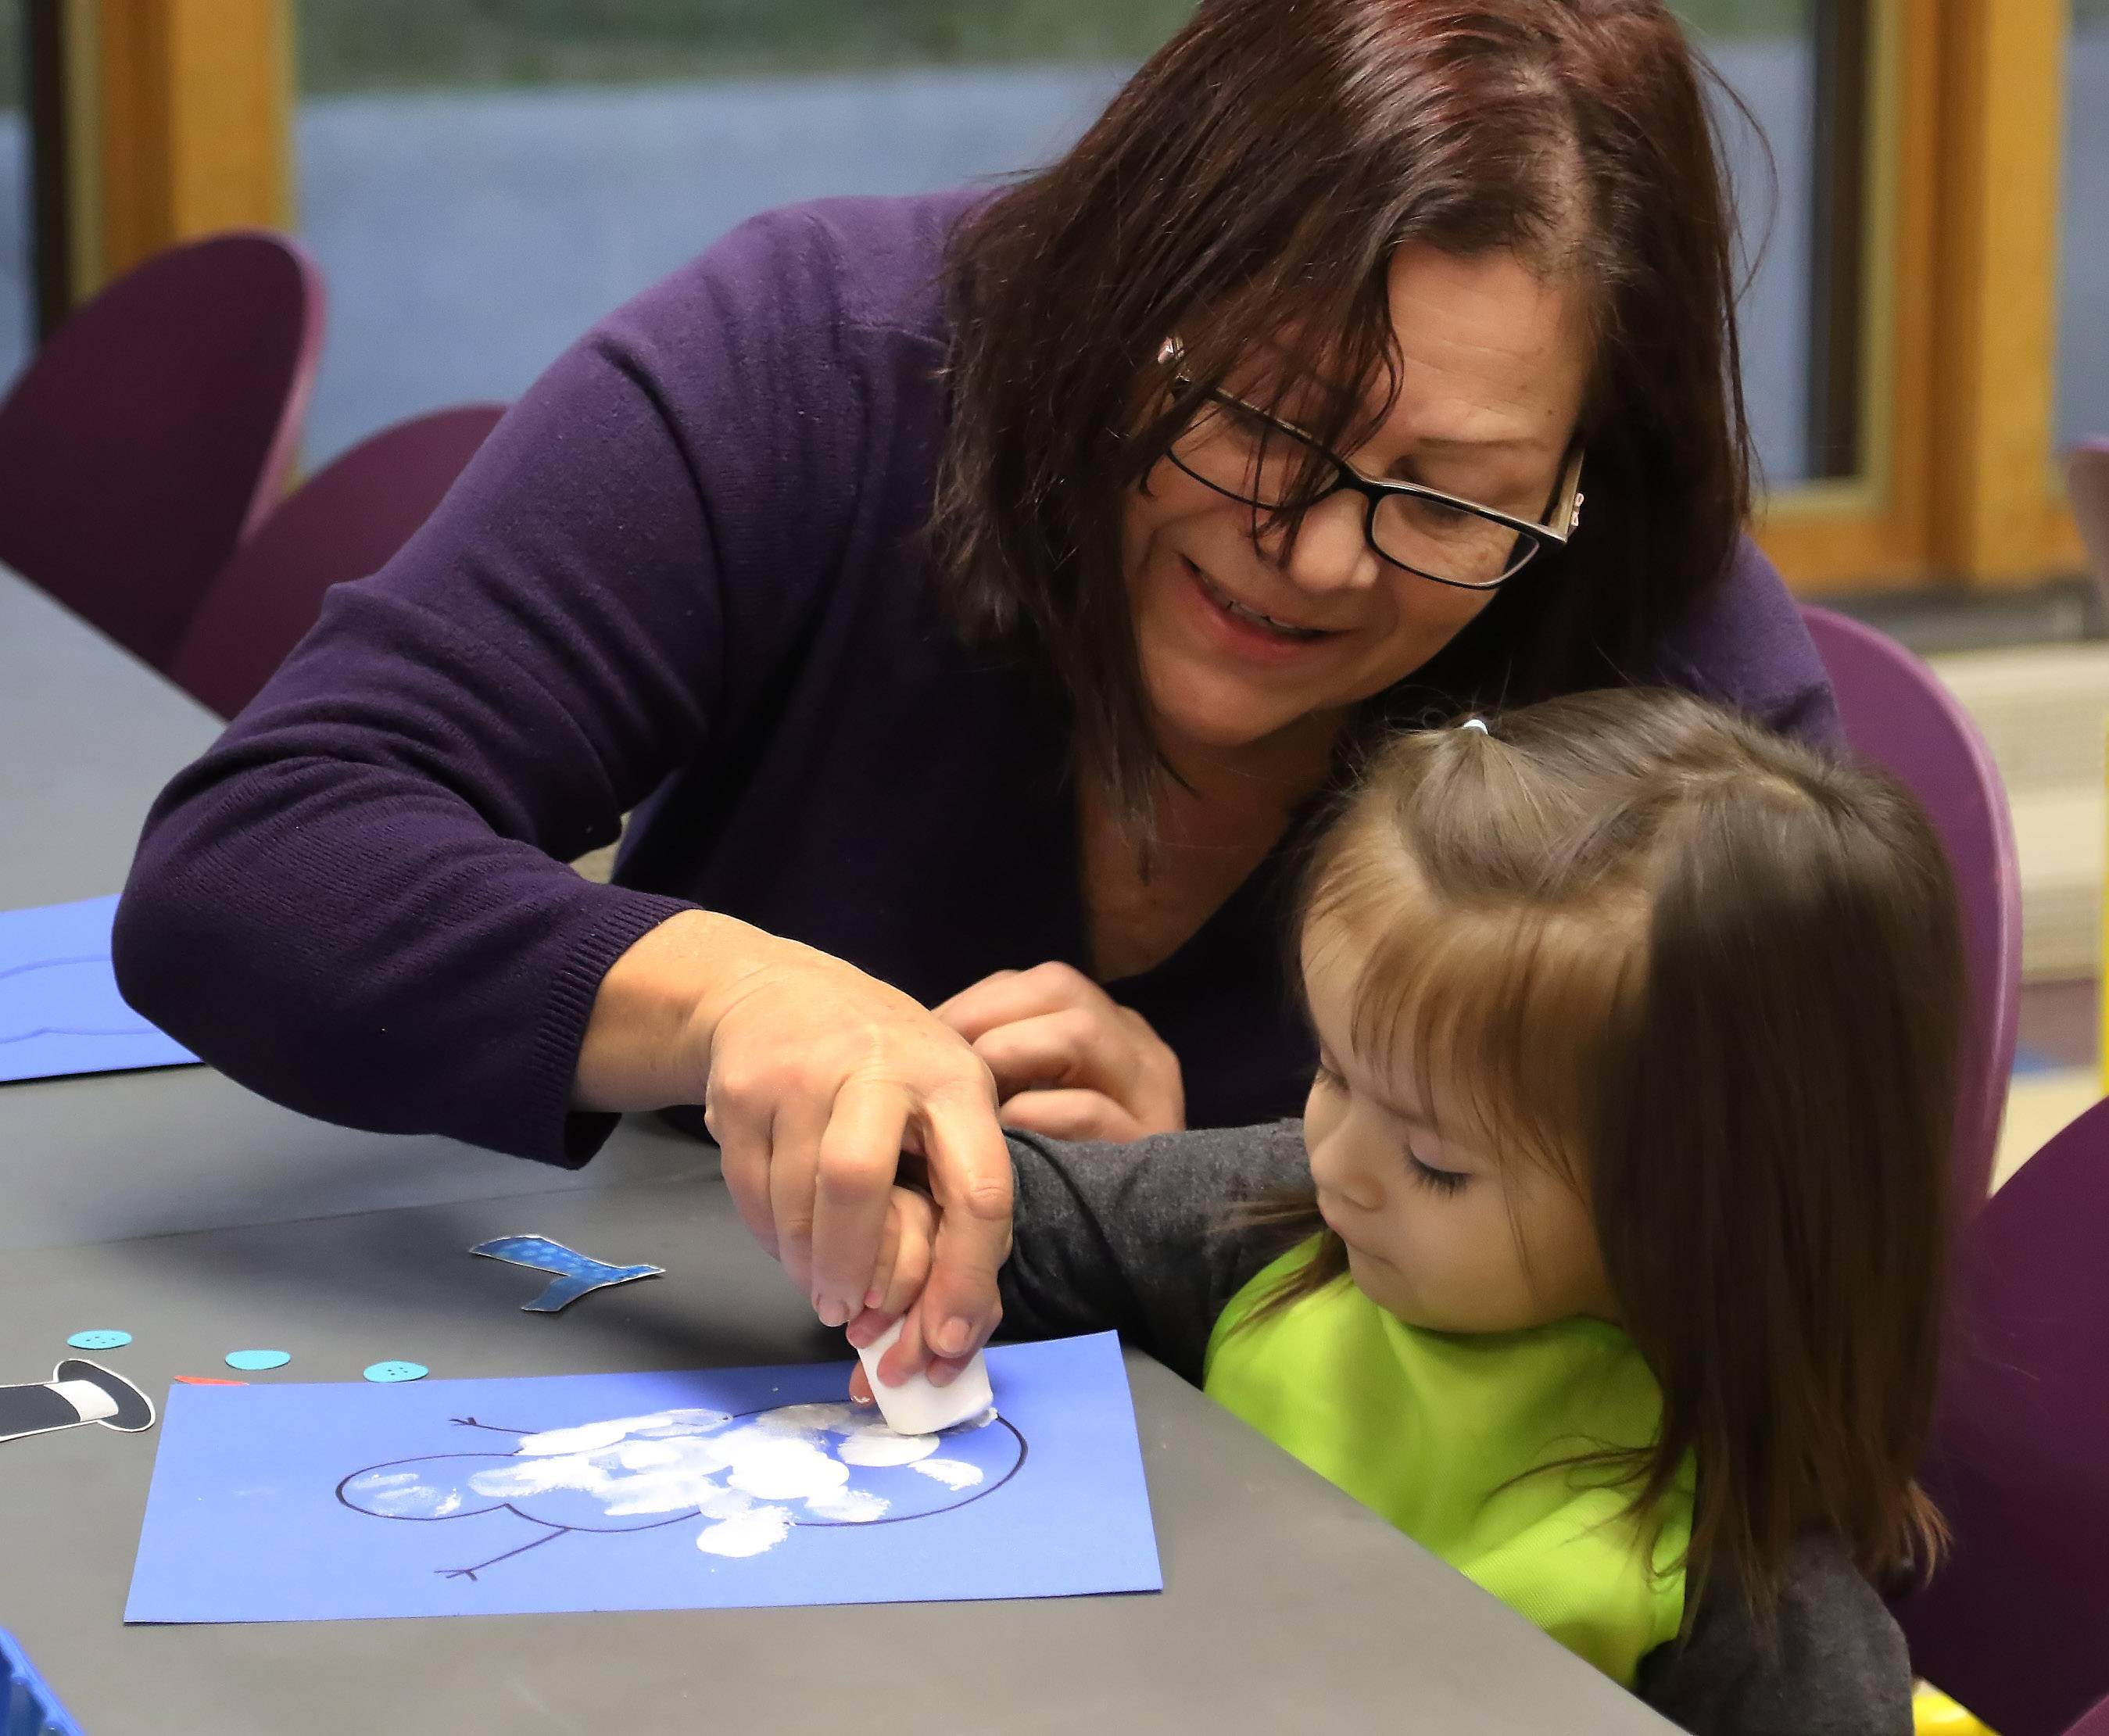 Ida Carillo of Round Lake helps her granddaughter, Isabella Gerrati, 2, use a marshmallow to paint a snowman as toddlers work on snow projects Tuesday during Toddler Art at the Round Lake Area Public Library. The class is held each month for 12- to 24-month-olds to work on hands-on art projects and develop their senses.